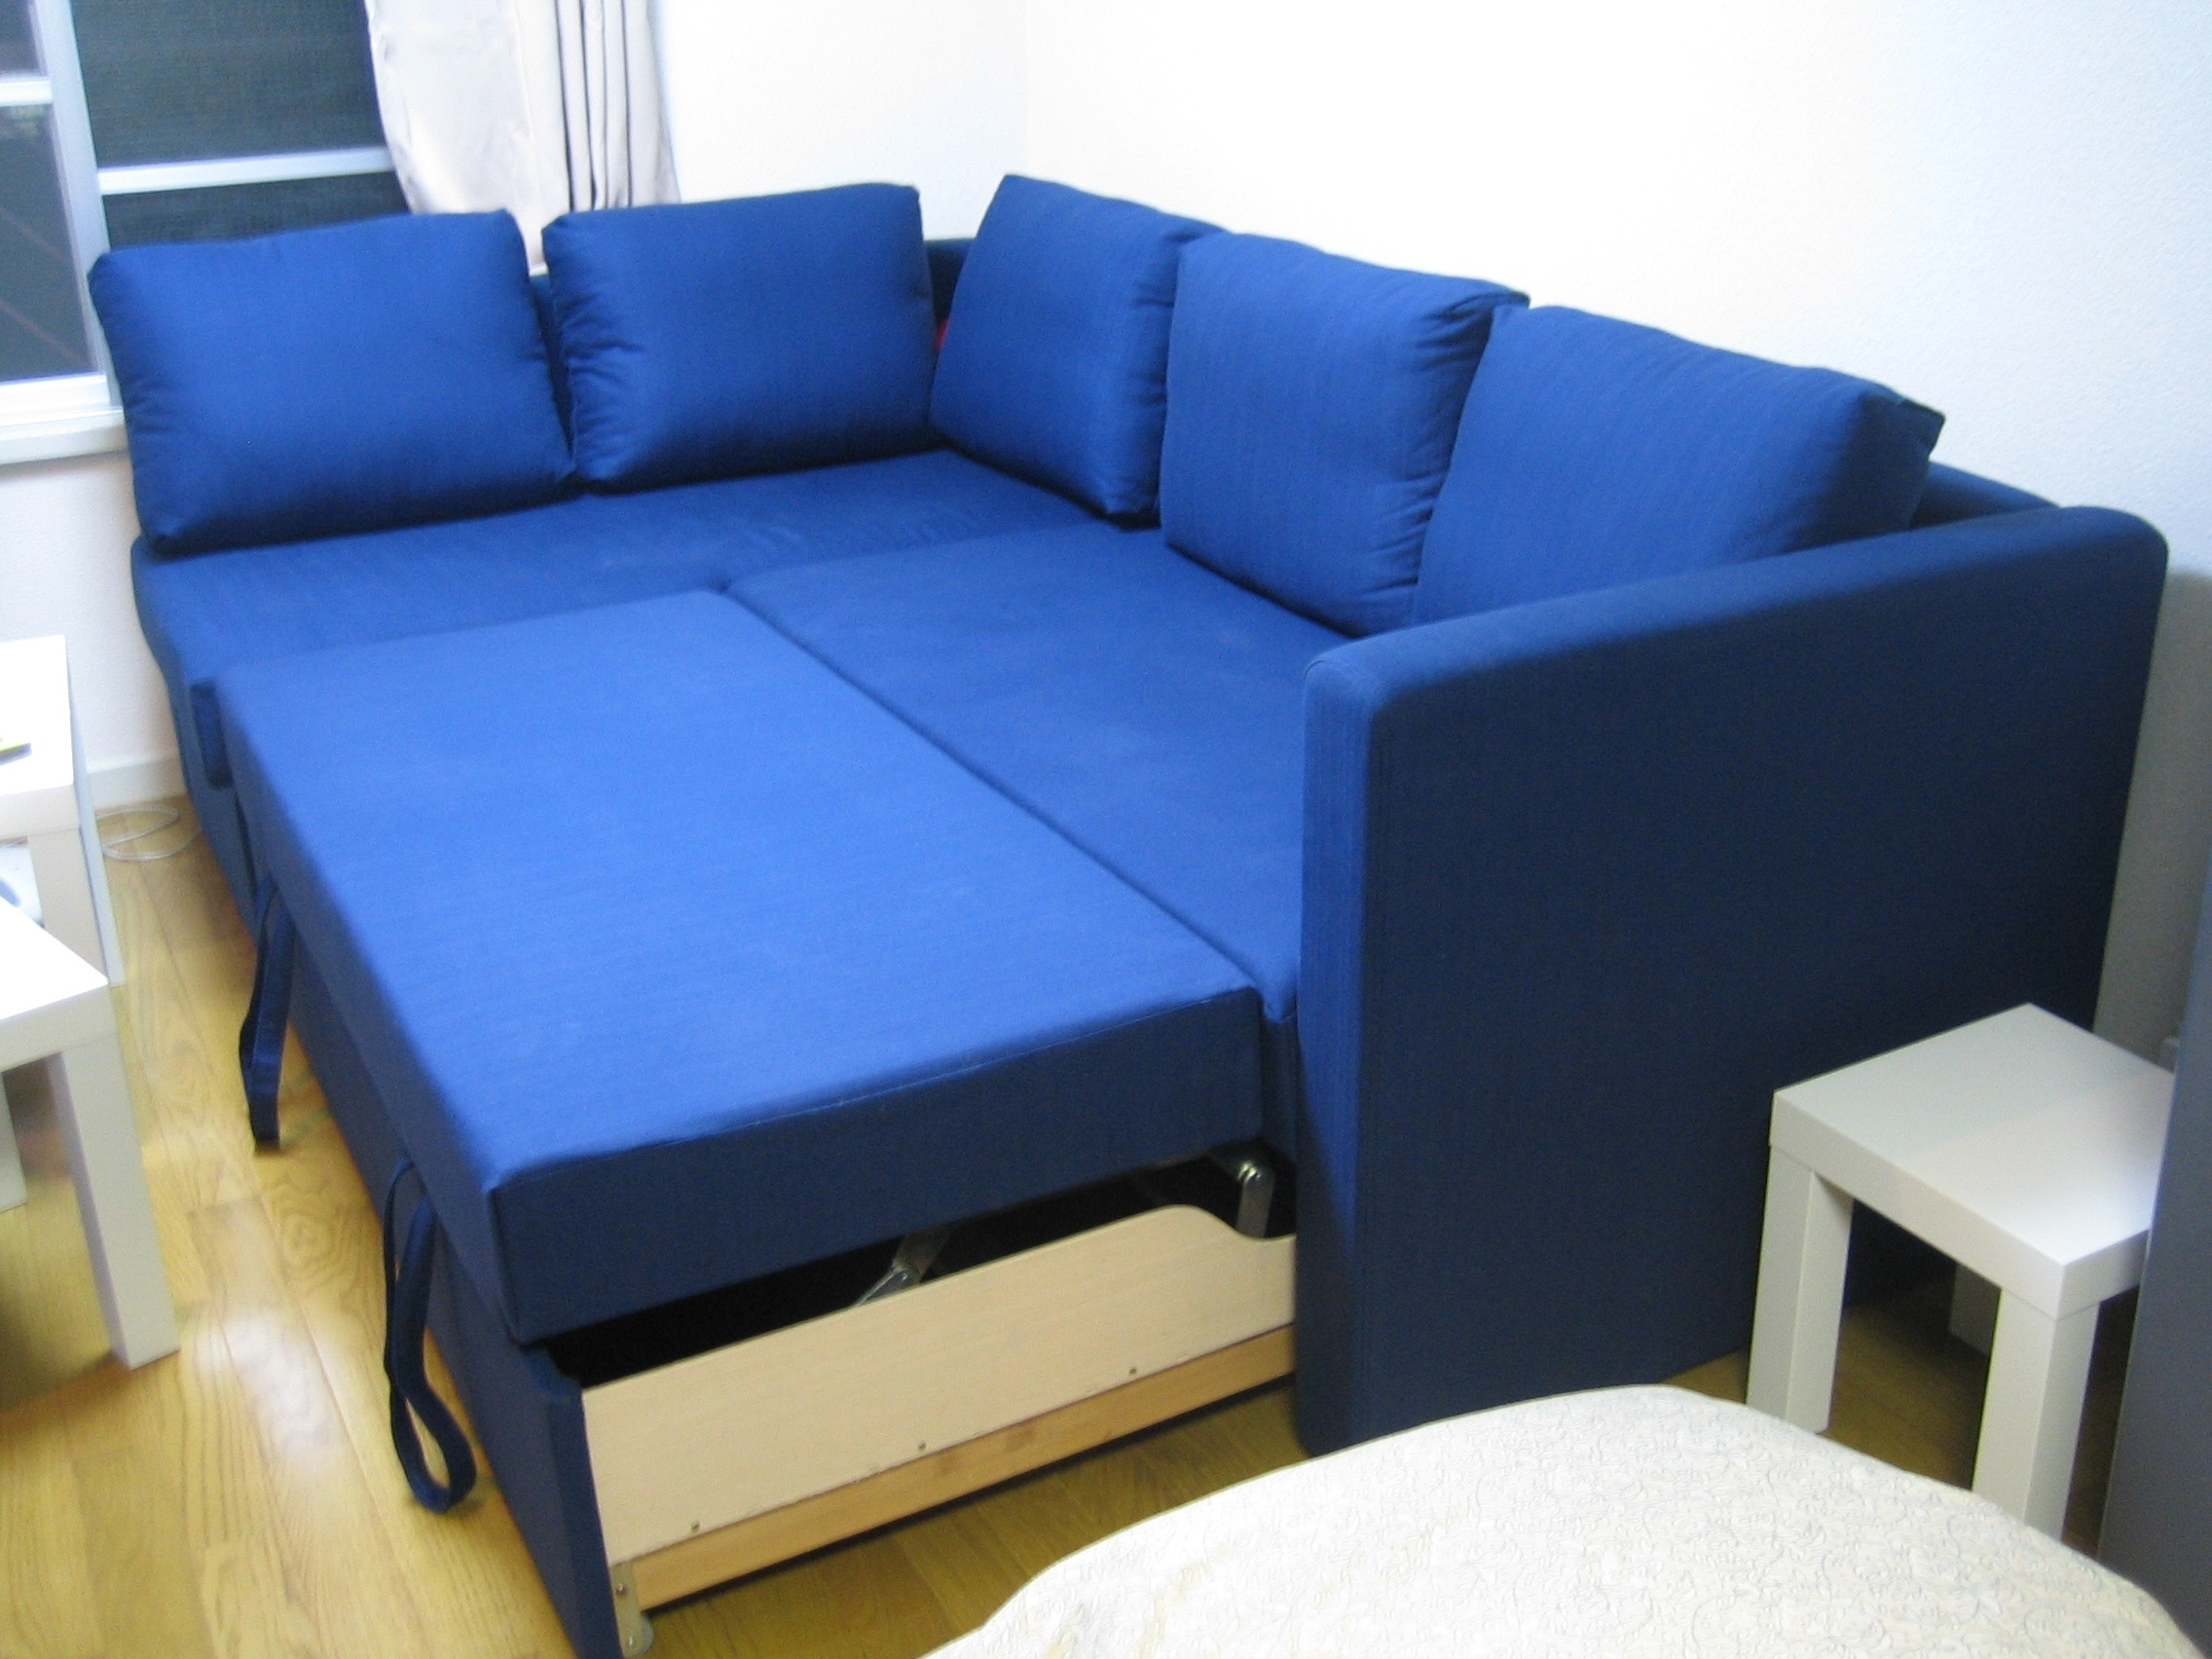 Sofa that turns into a bed e saving sleepers sofas convert for Sectional sofa that turns into a bed